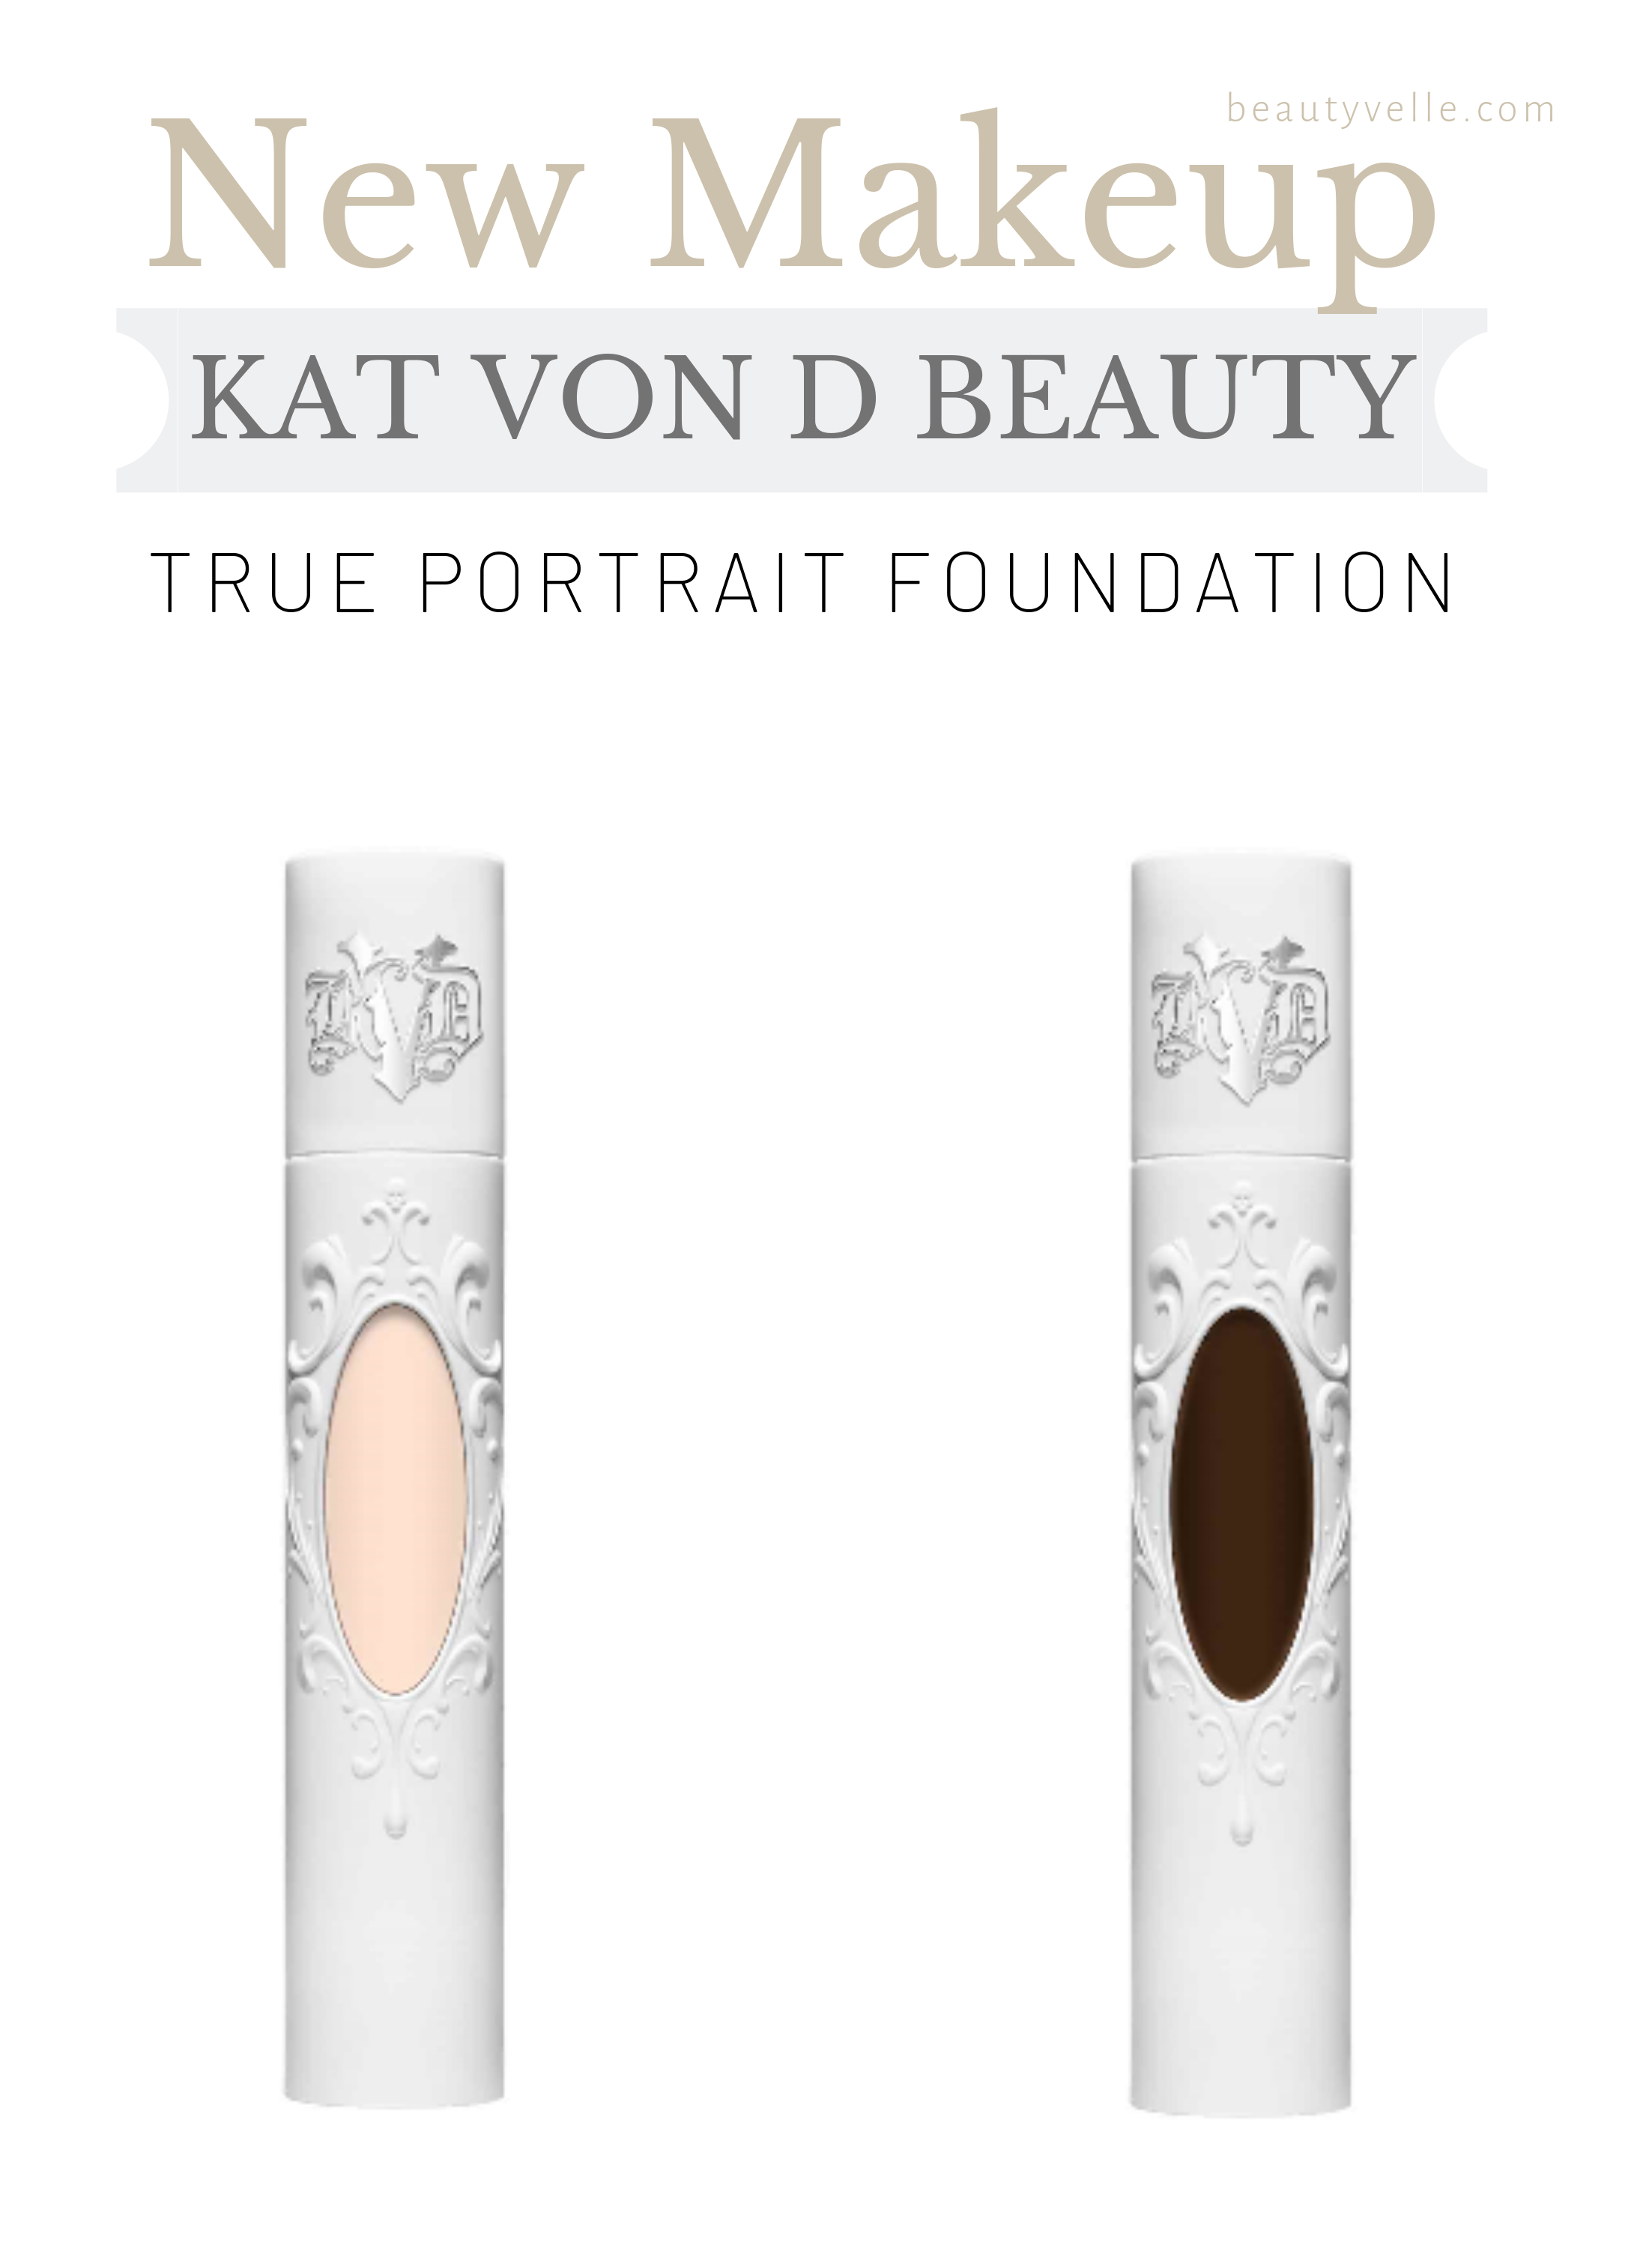 New Makeup Kat Von D True Portrait Foundation